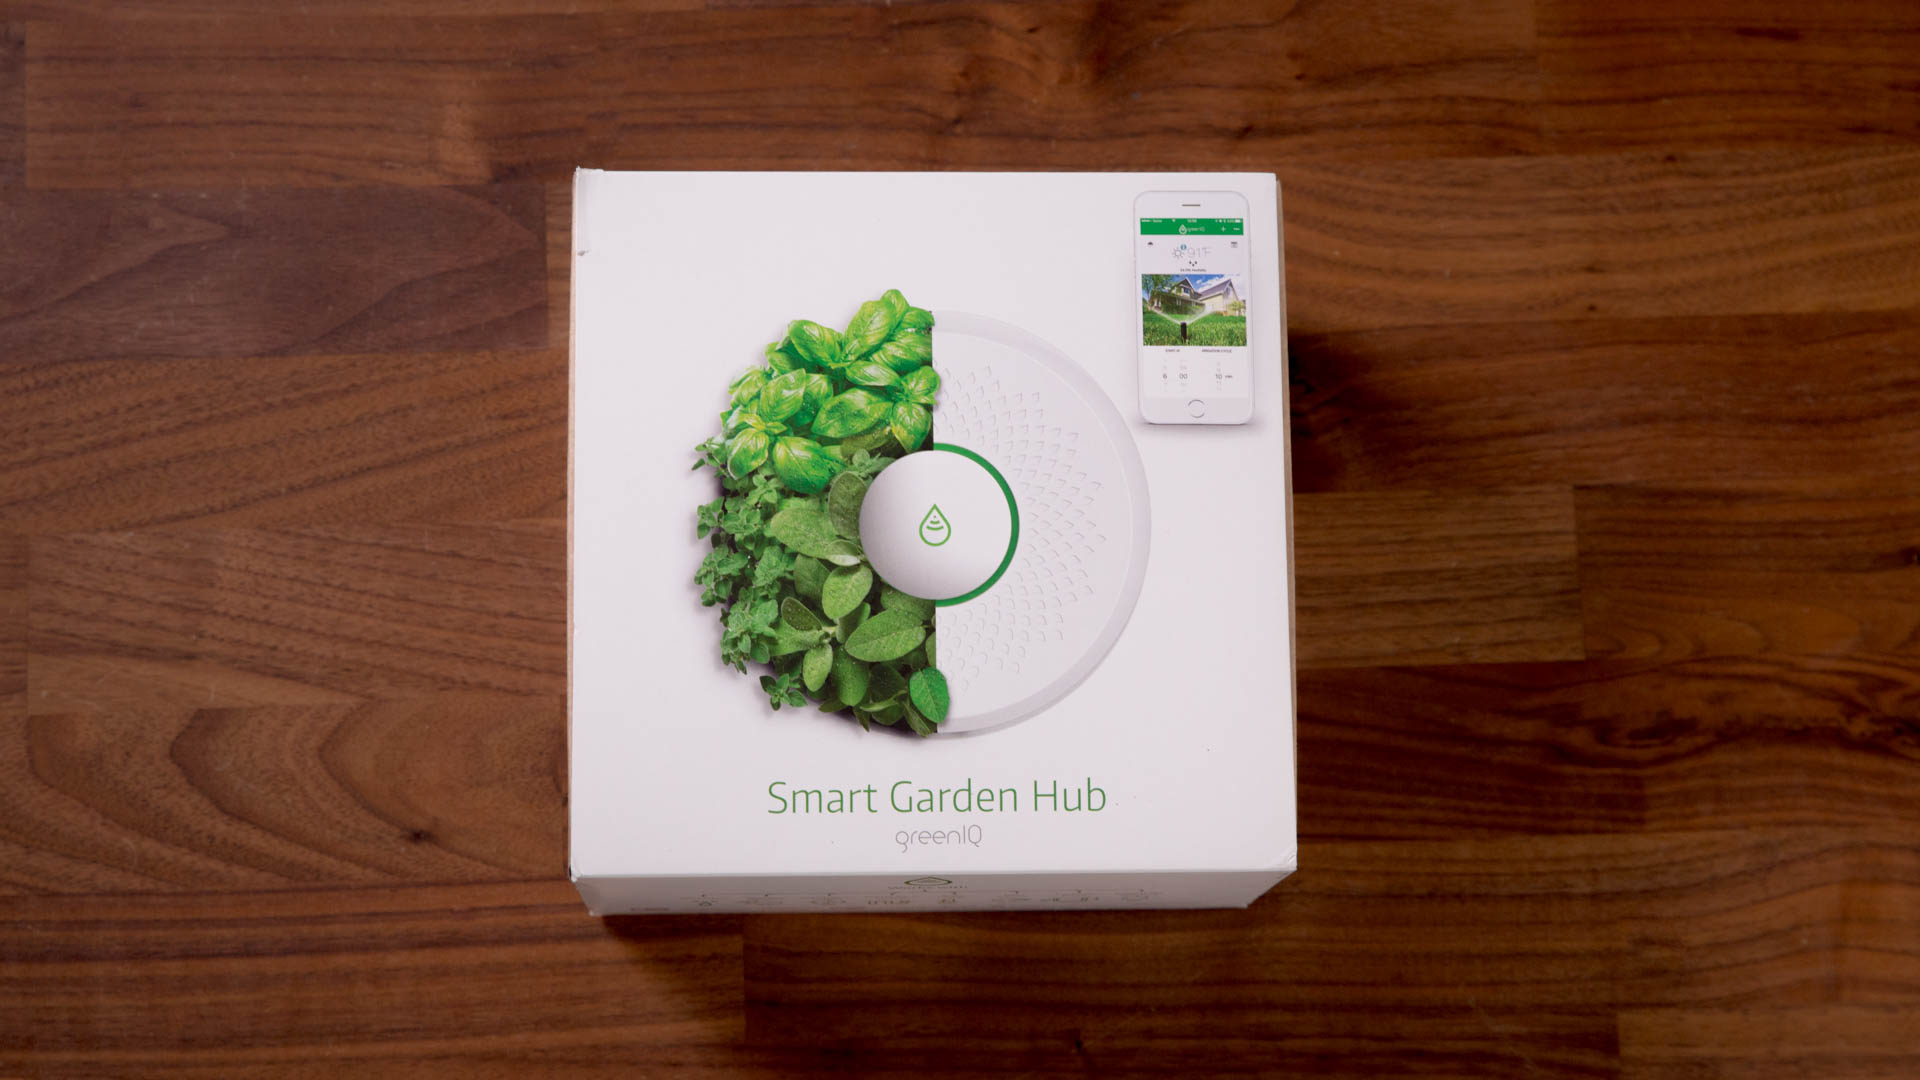 GreenIQ's Smart Irrigation Controller Does More Than Just Water Lawns